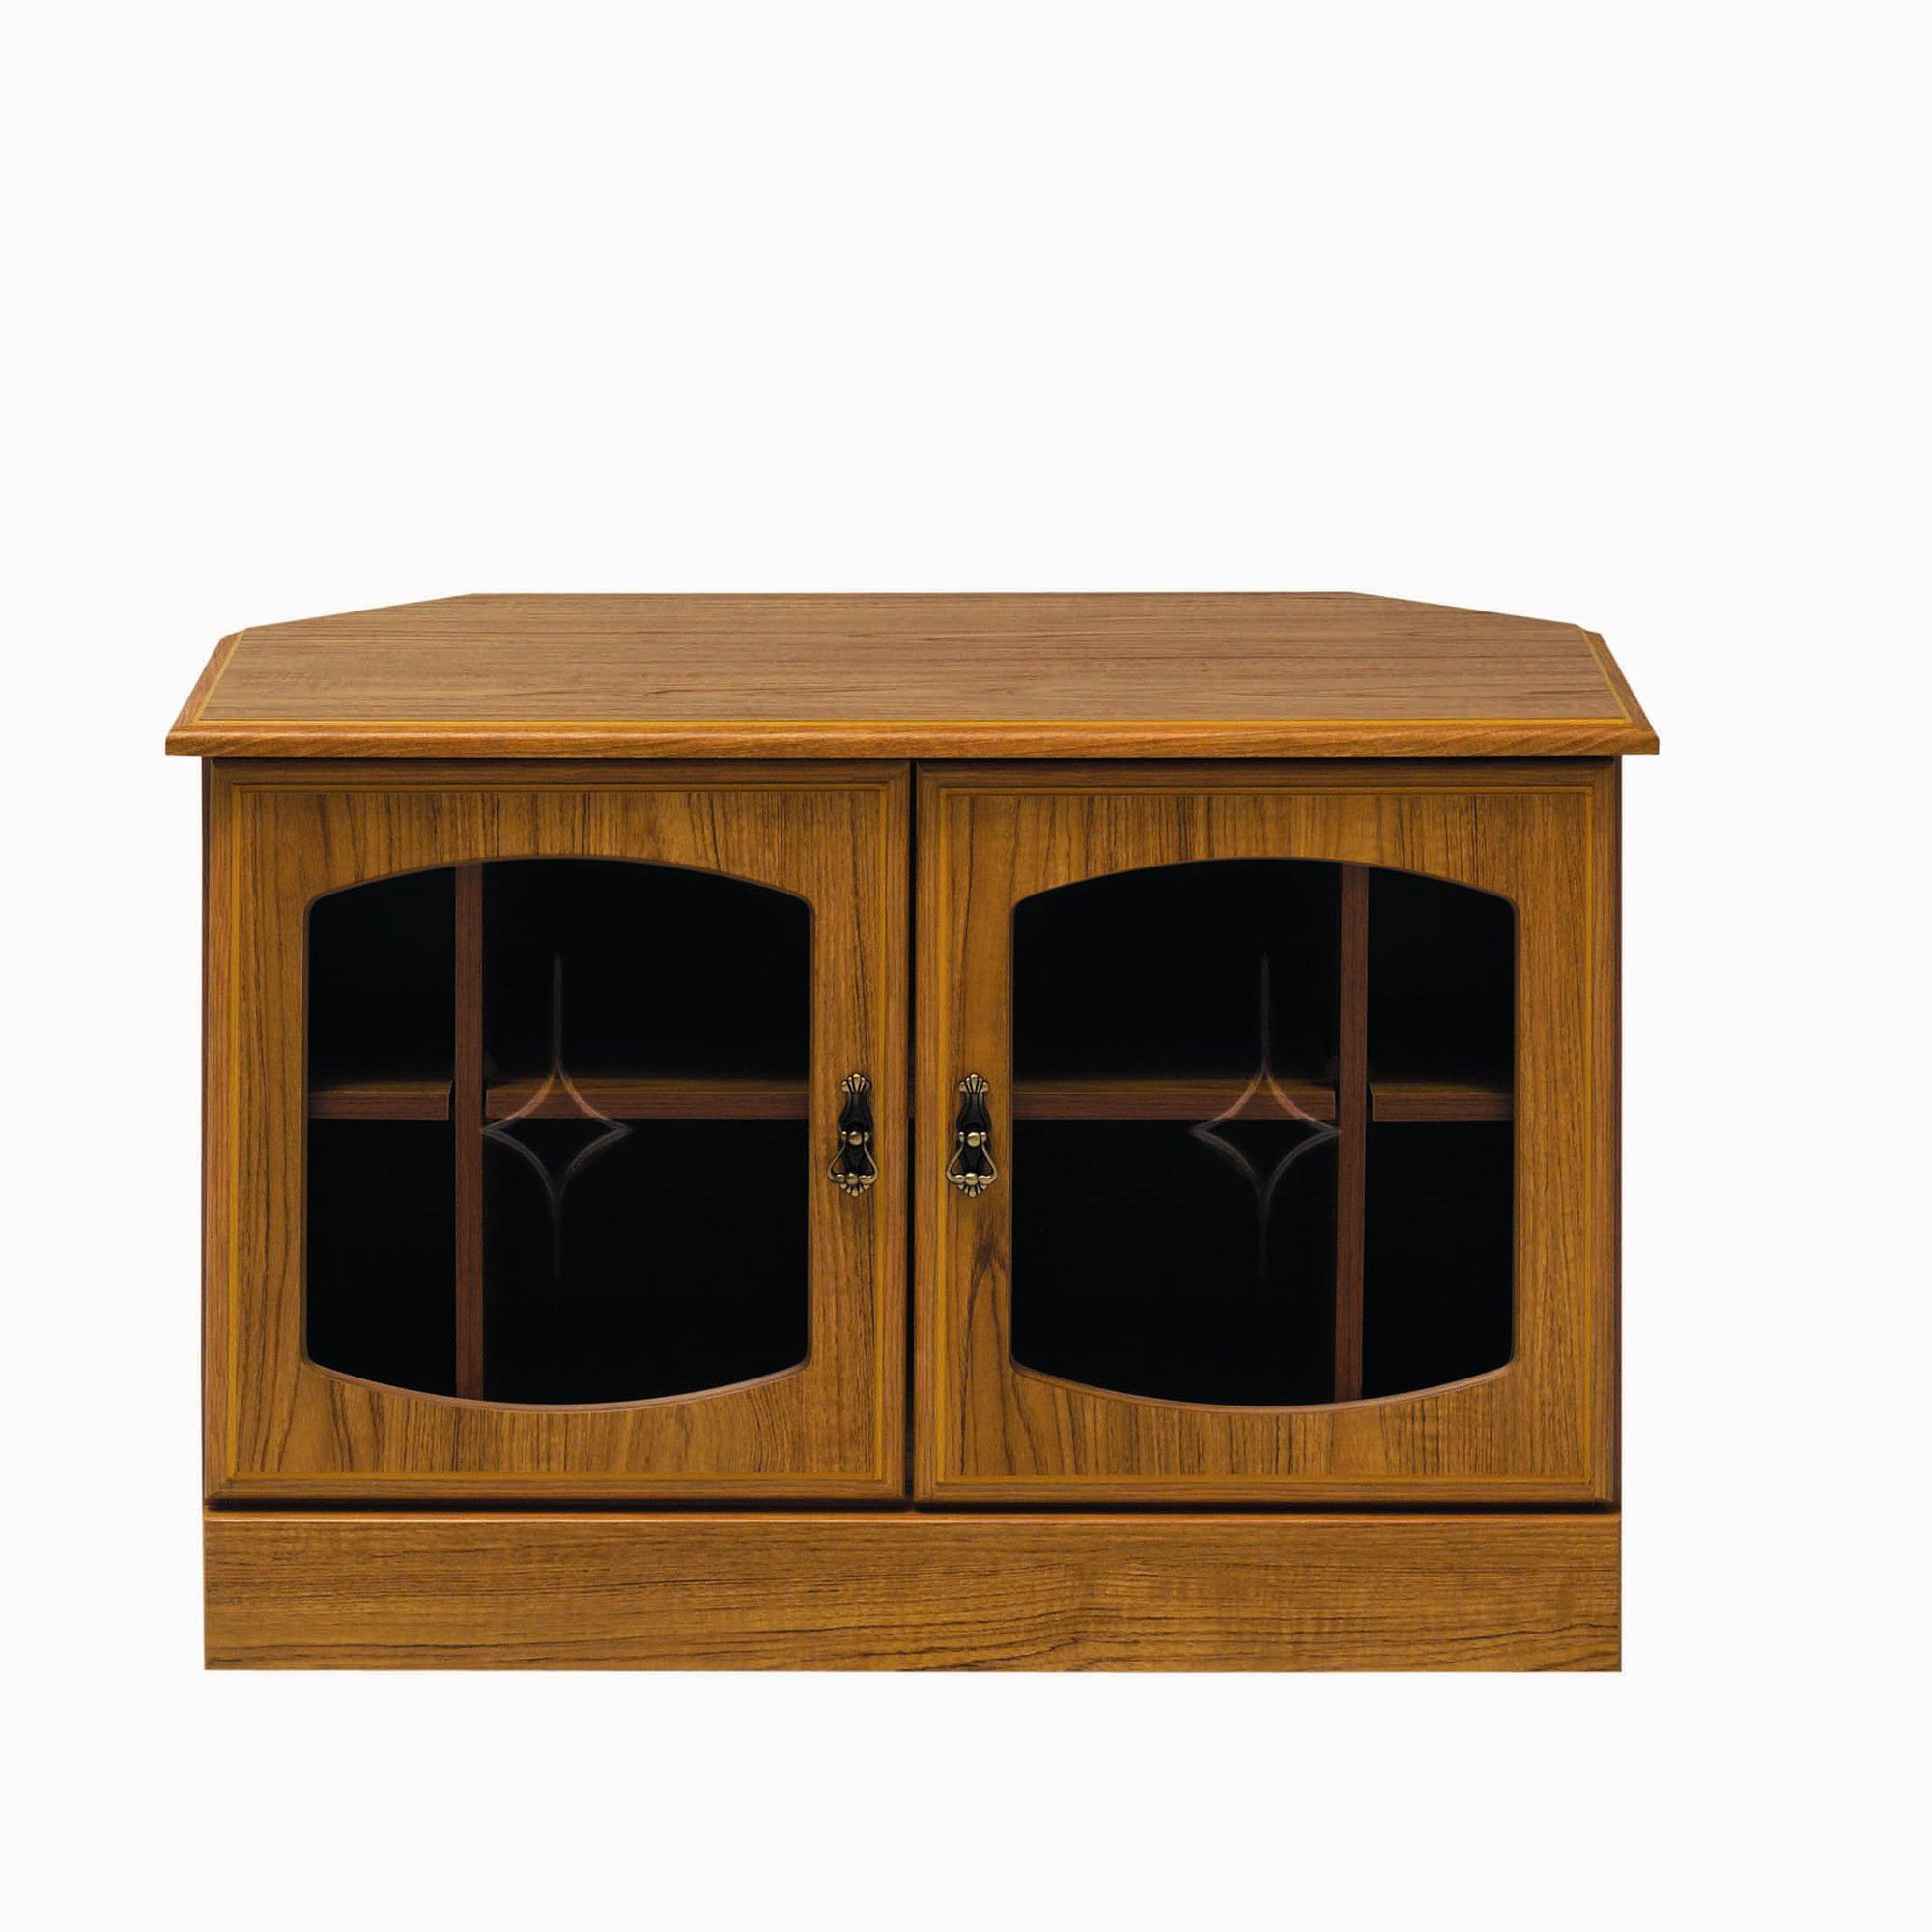 Caxton Tennyson Wooden Corner TV Cabinet at Tesco Direct